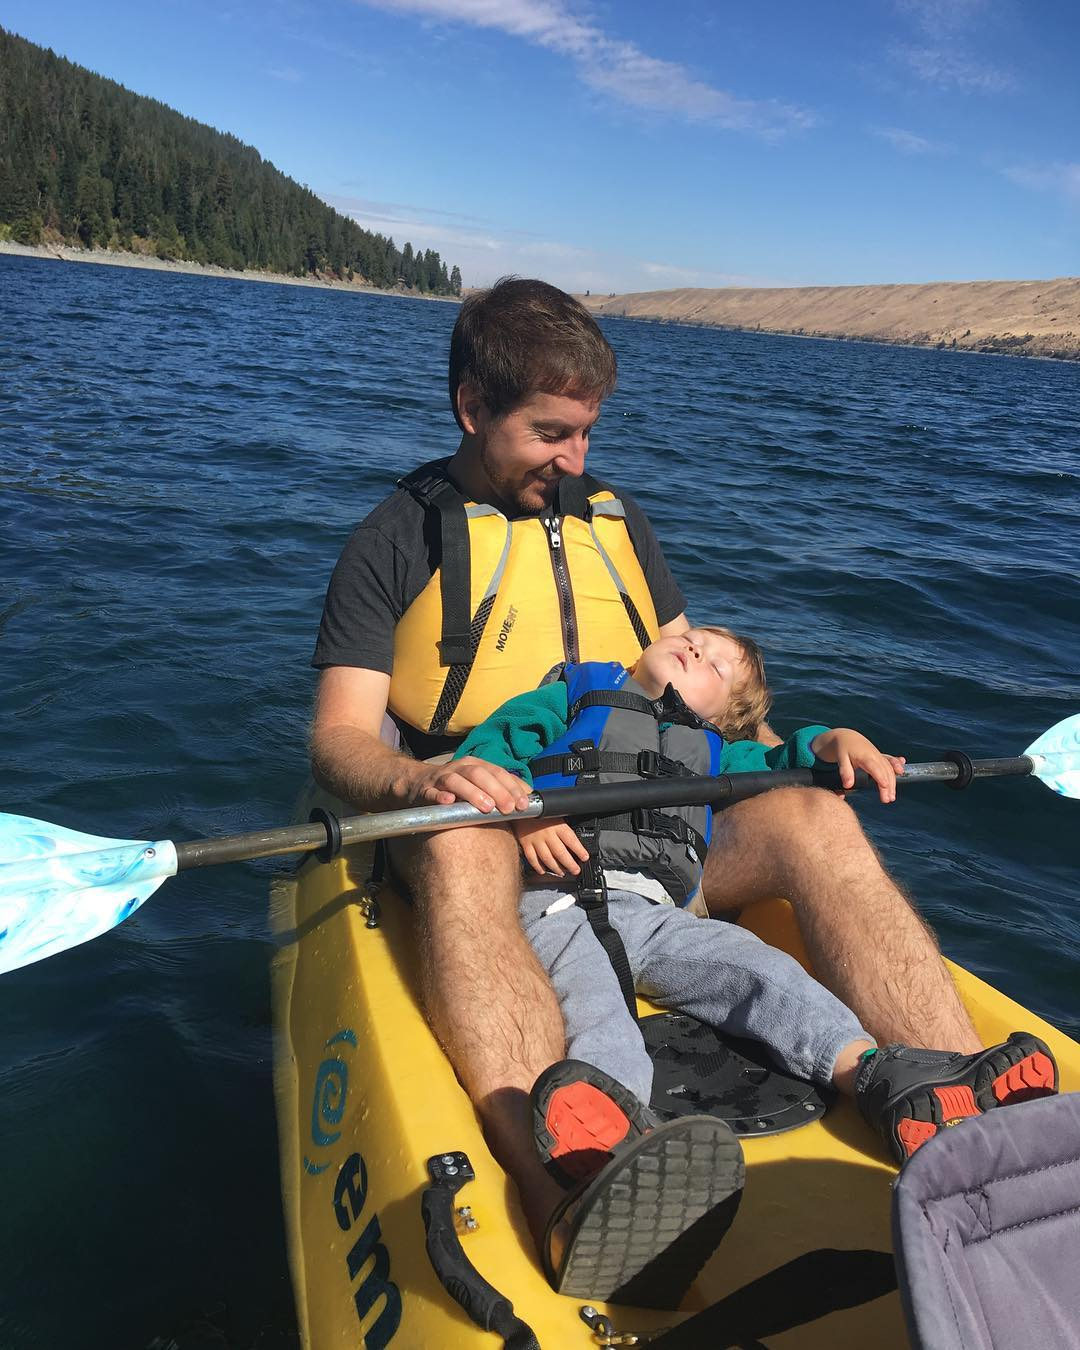 Charlie sleeping in Daniel's arms in the kayak.